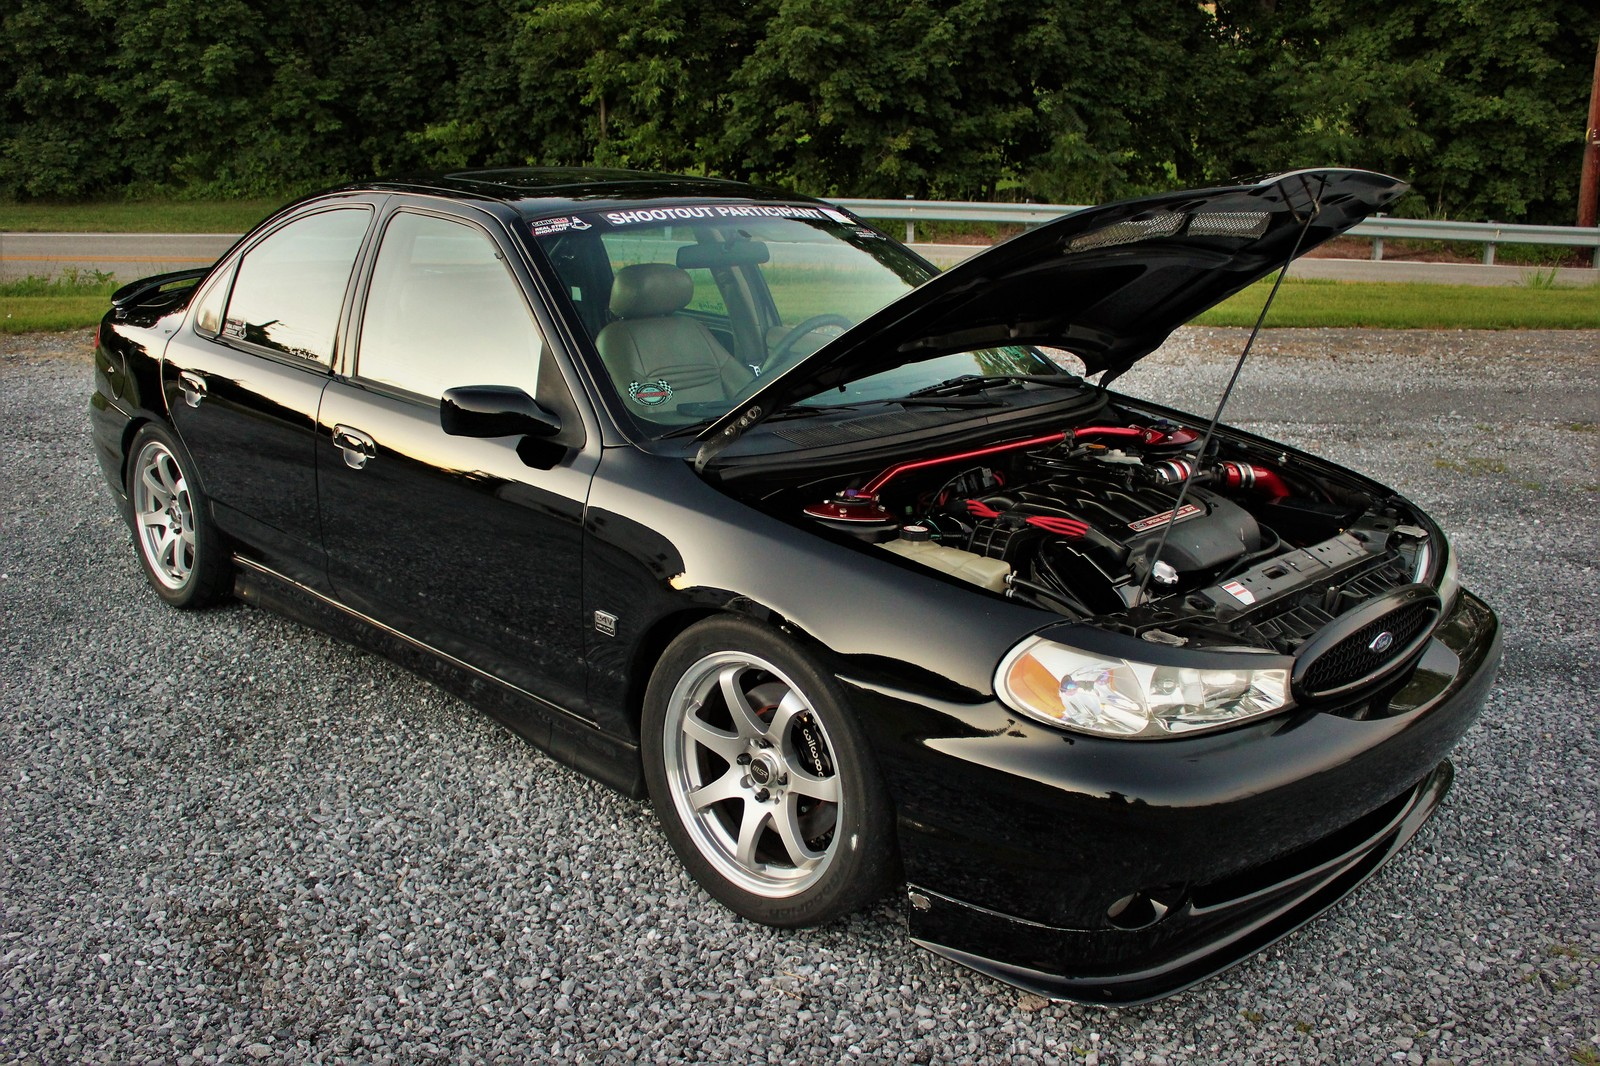 Black 2000 Ford Contour SVT